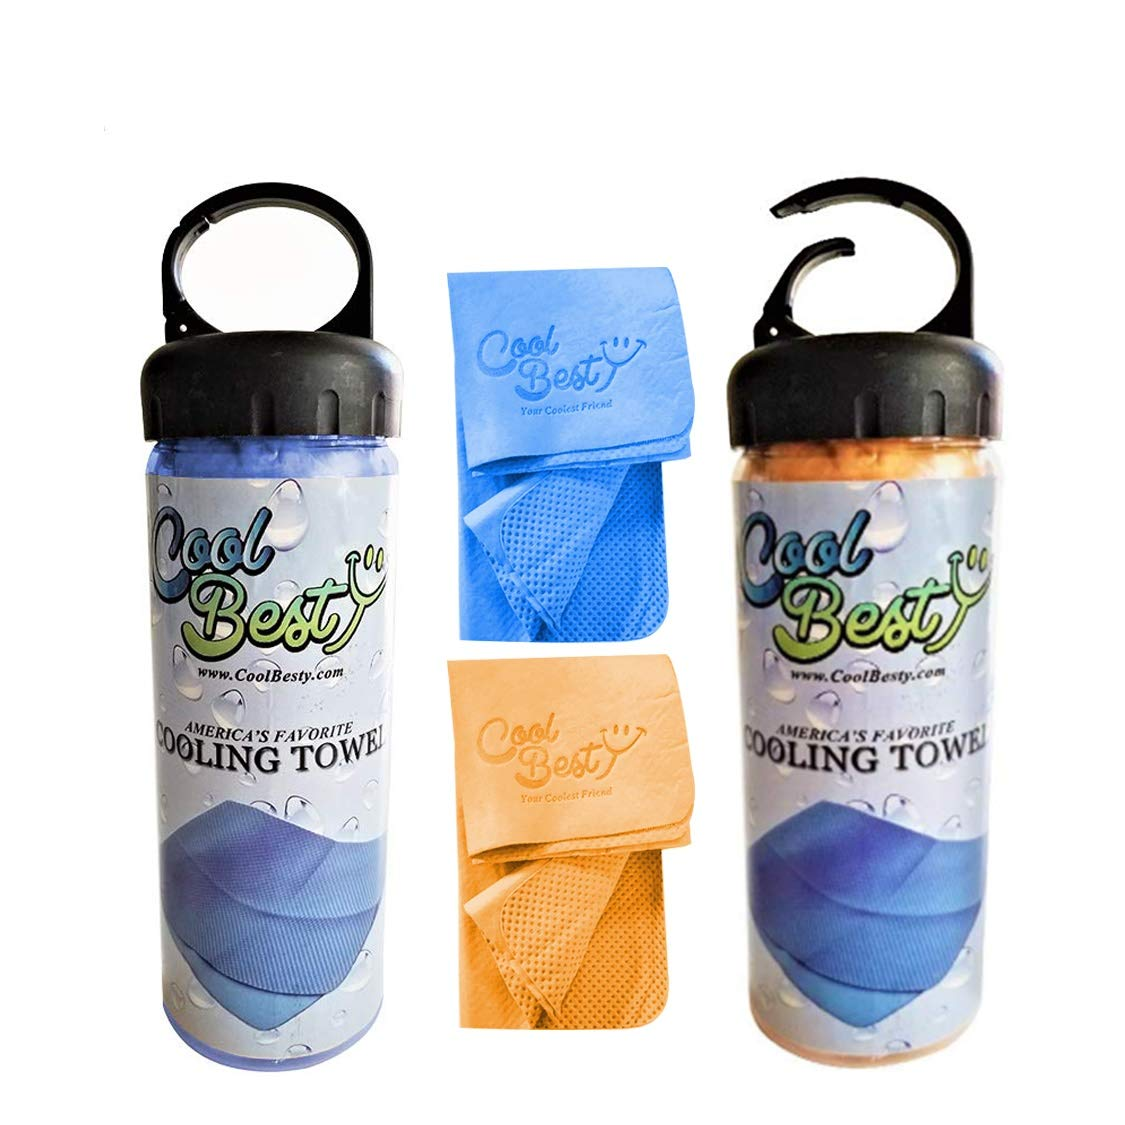 Cool Besty Cooling Towel-Workout/Tennis/Golf/Biking-Best for Any Sport Activities&Athletes Cold Towel-Chilly Pad Instant Cooling Snap Towel-Perfect for Fitness&Gym